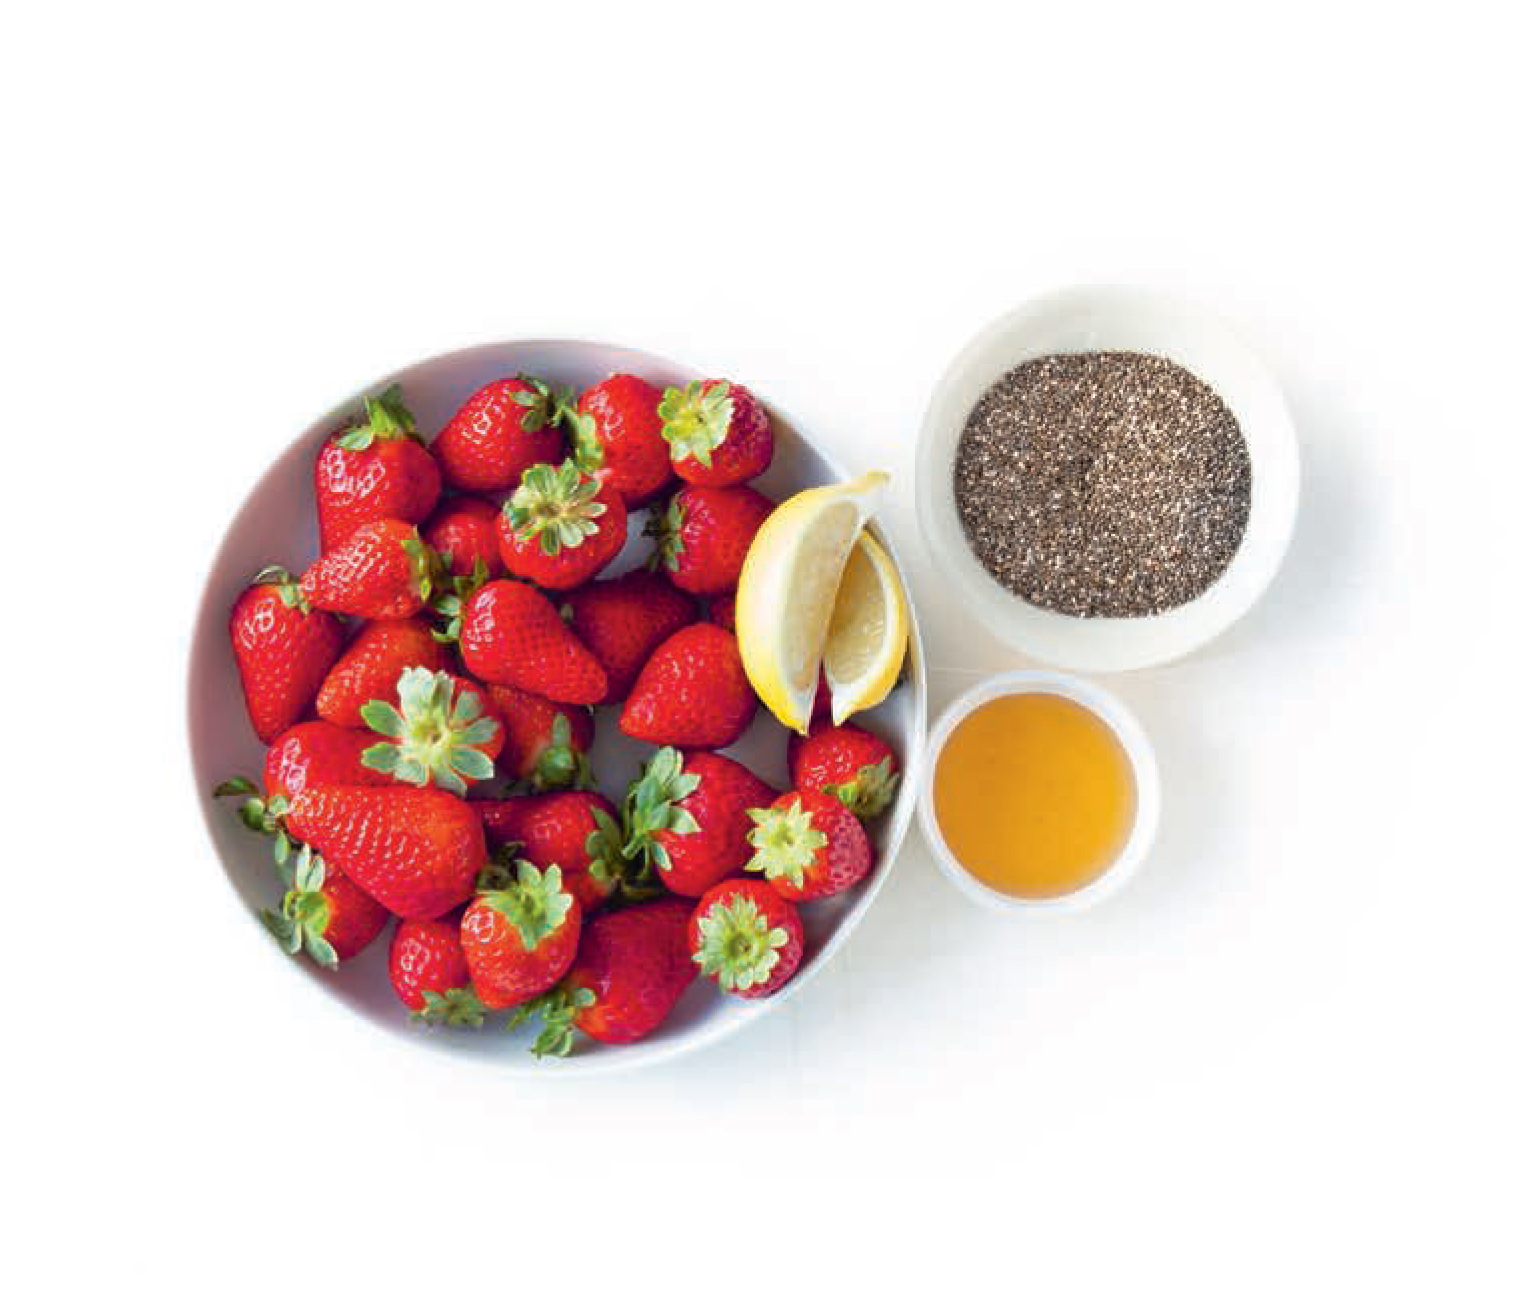 Strawberry superspread